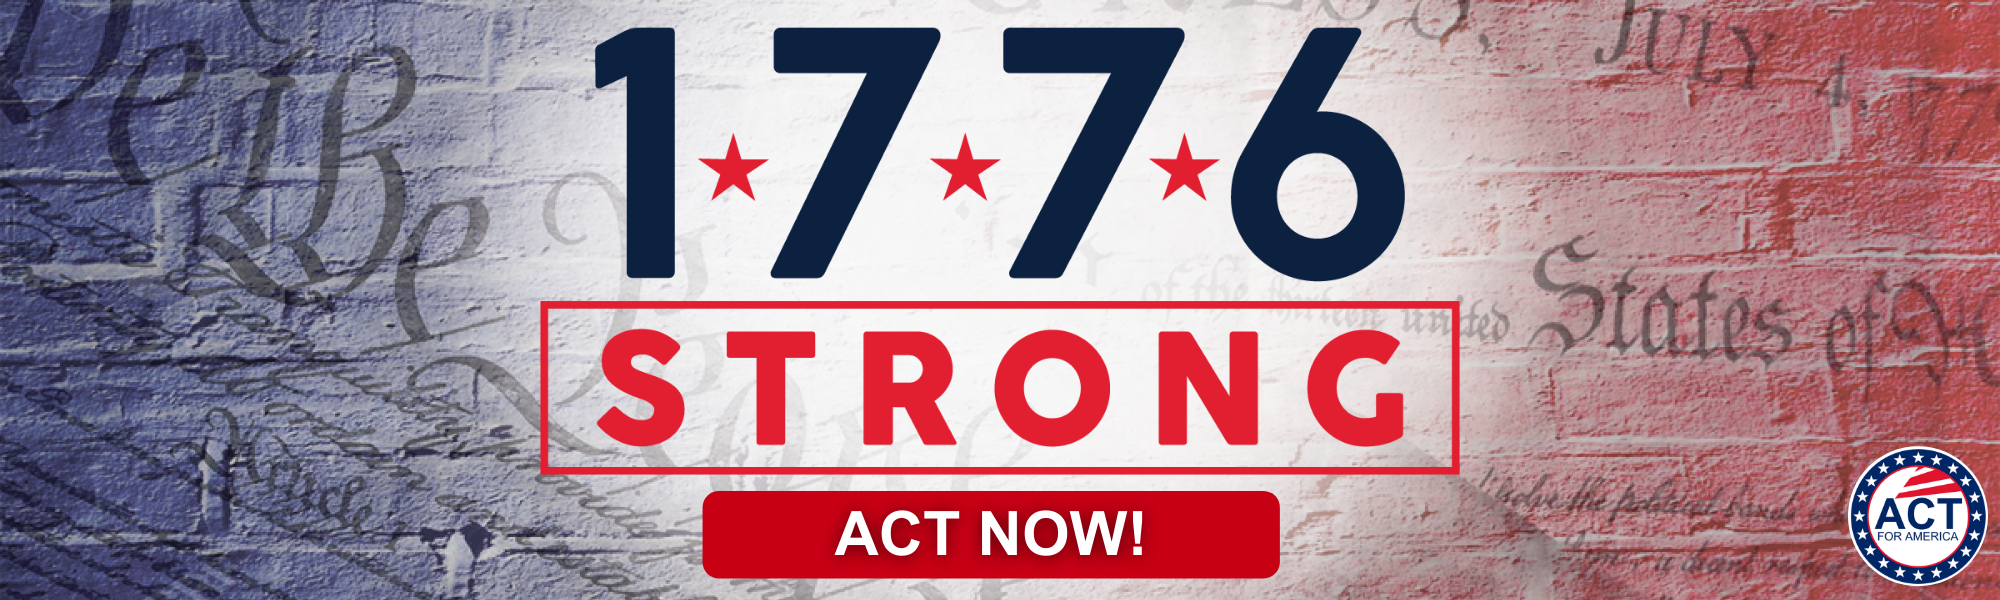 1776 Strong